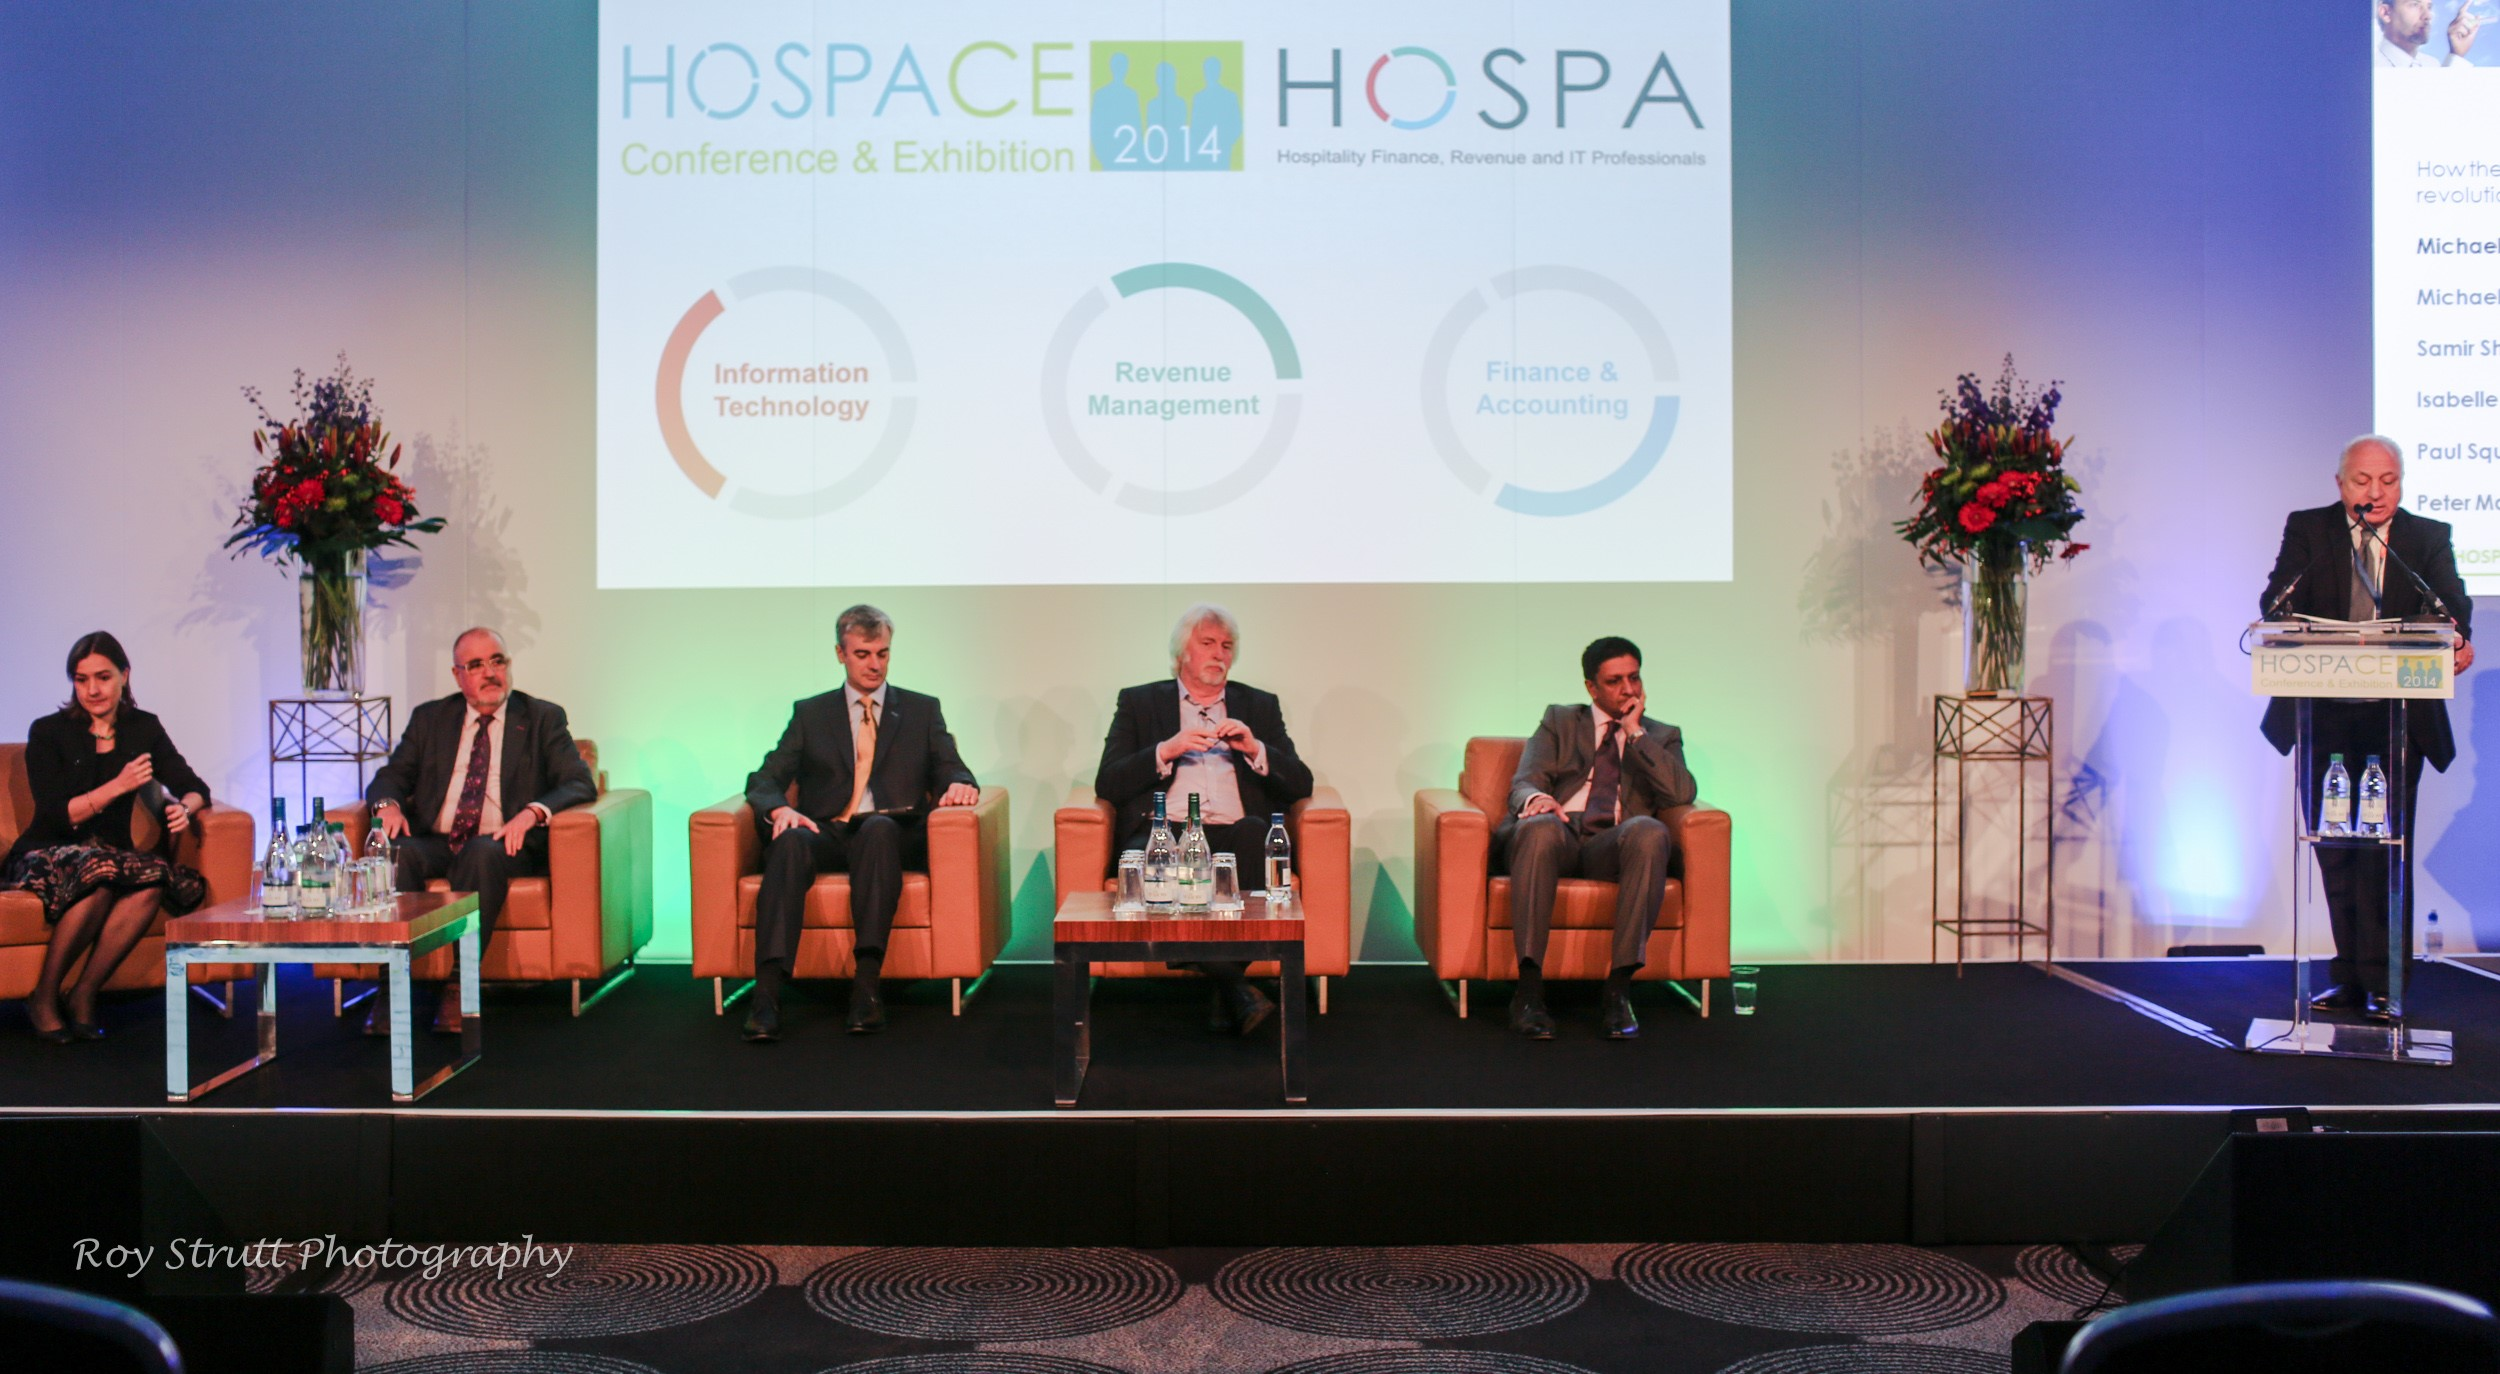 7034-Spotligh-Panel-on-Big-Data-at-HOSPACE2014.jpg